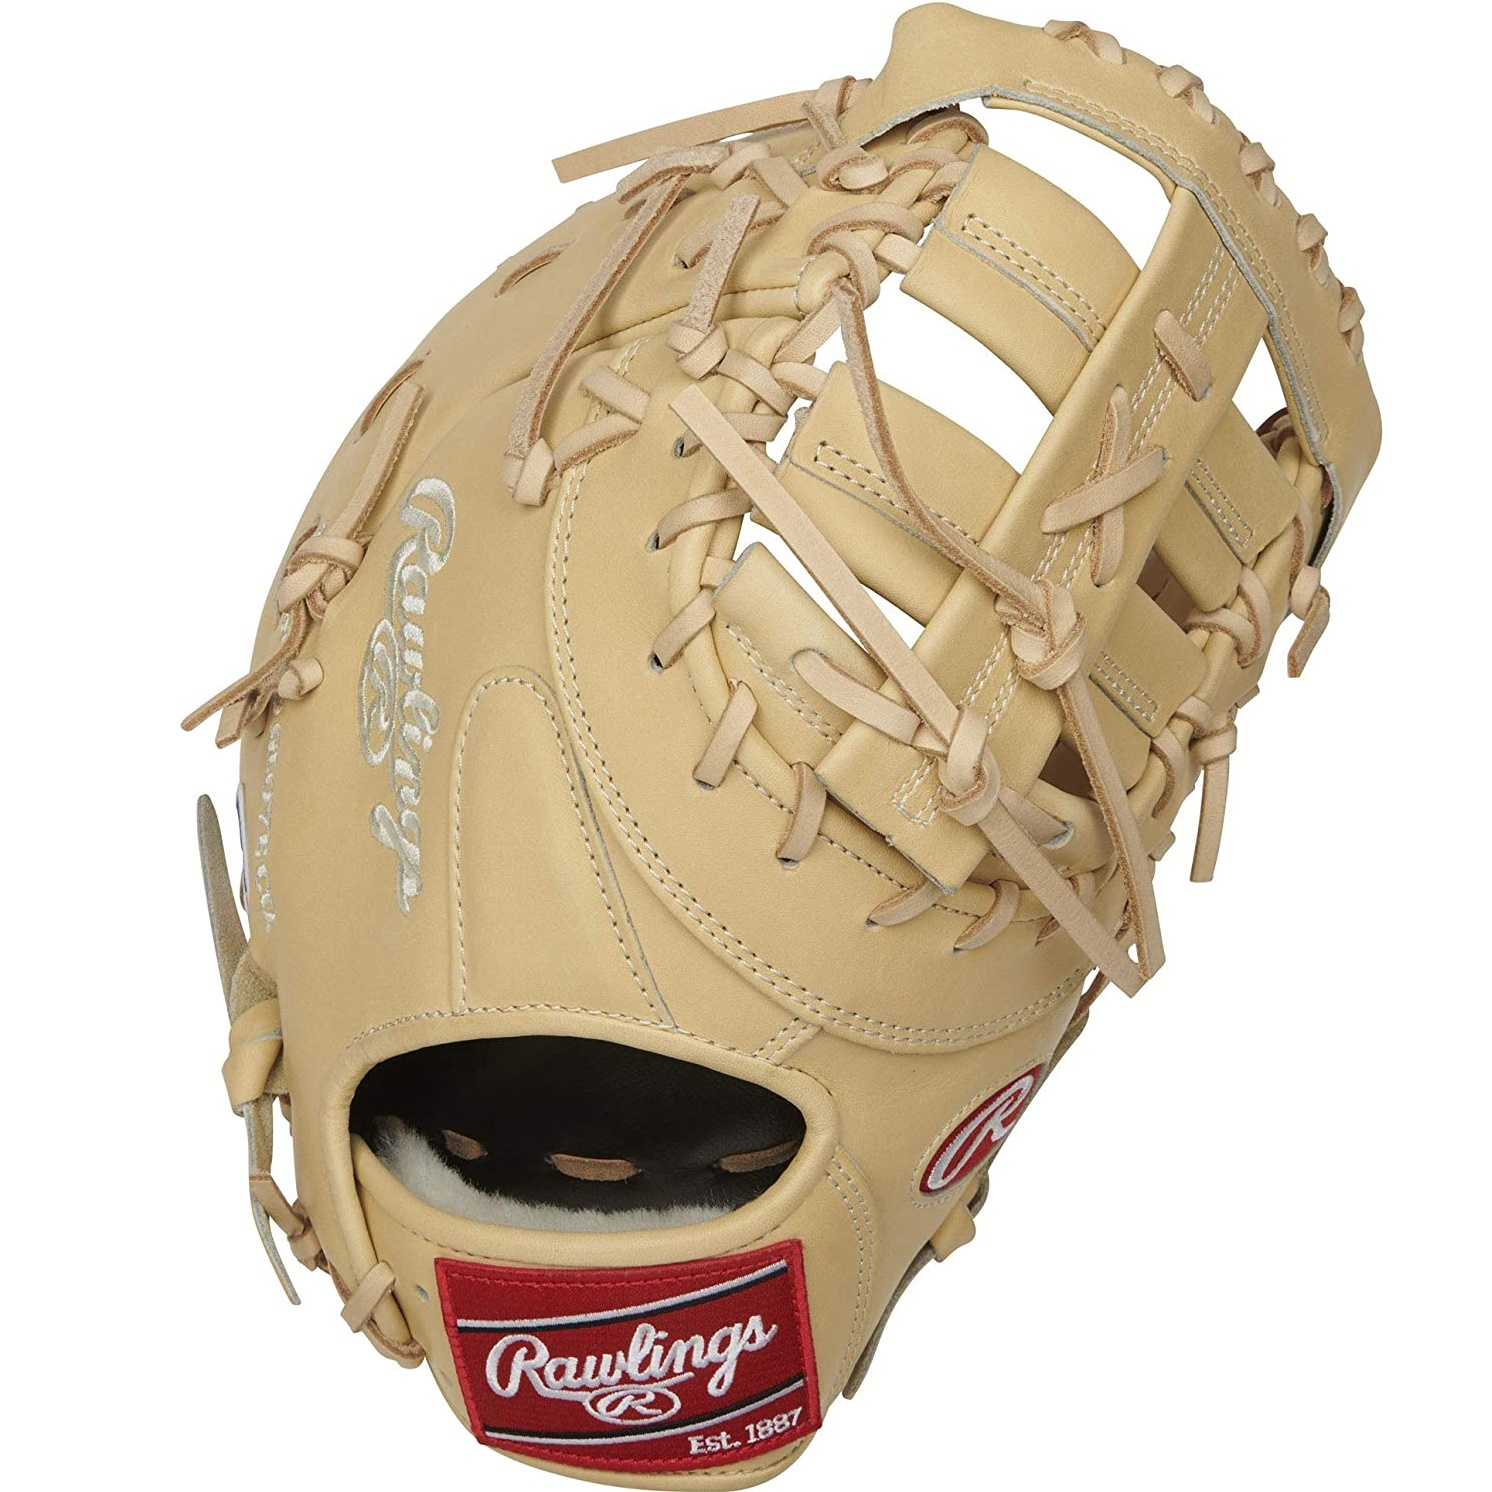 rawlings-pro-preferred-first-mitt-single-post-double-bar-web-13-inch-right-hand-throw PROSDCTCC-RightHandThrow   The 2021 Pro Preferred 13-inch first base mitt was crafted from